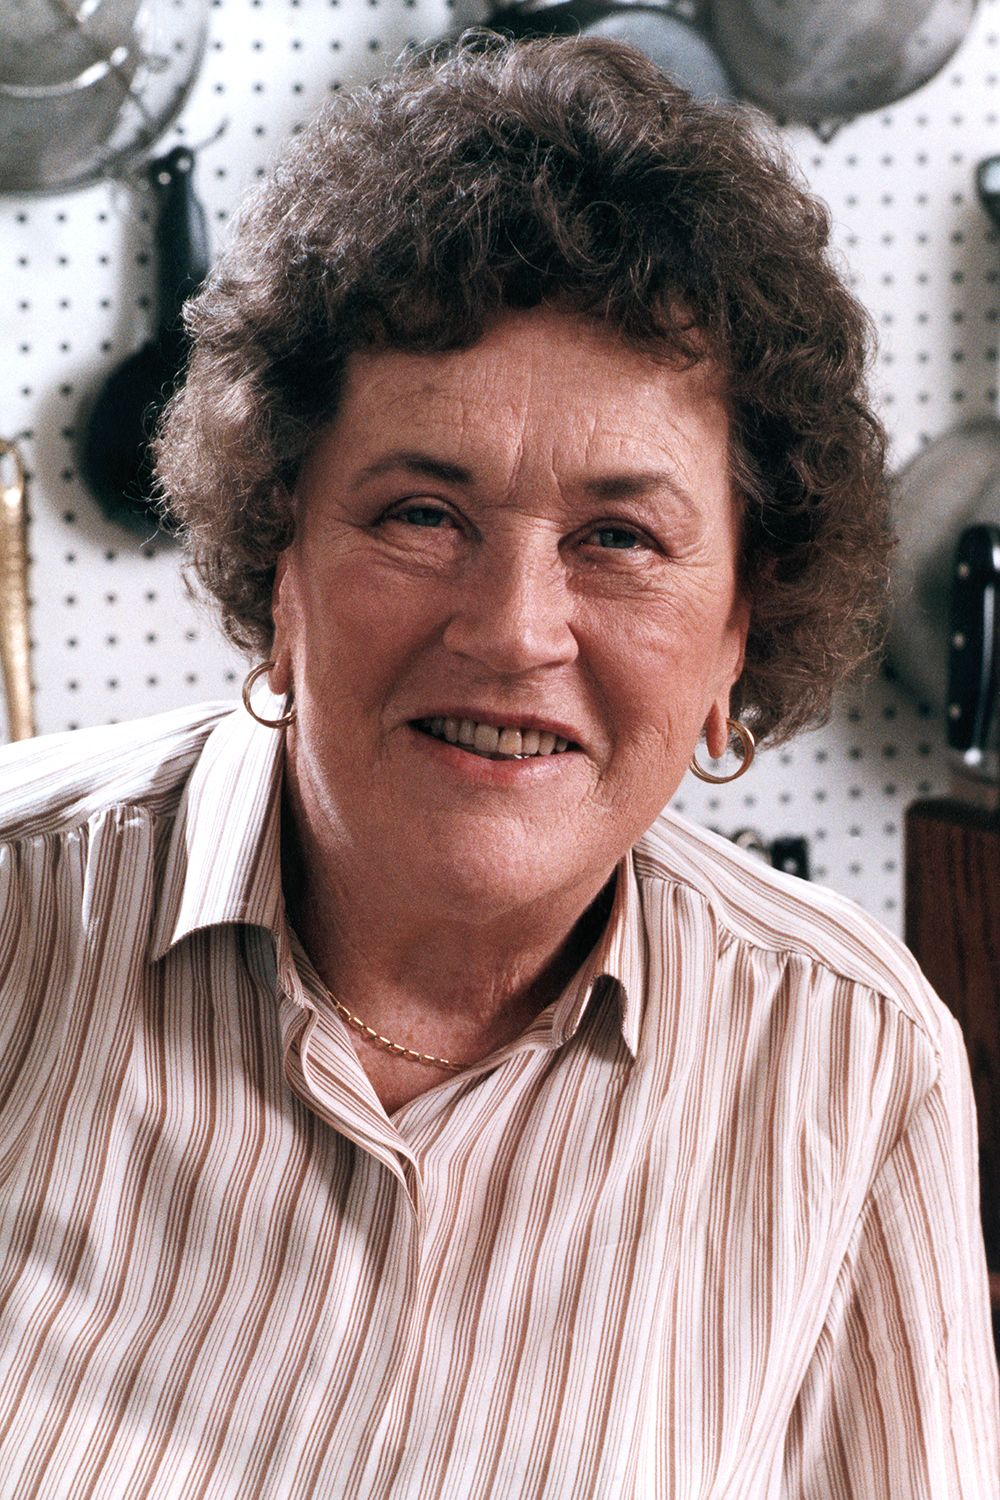 <p>If we can learn anything from Julia Child (beside the magic of adding butter to a dish), it's how to make the best of any situation. She spent her twenties working as a copywriter. When the United States joined World War II, Child tried to join the Women's Auxiliary Corps but was rejected for being too tall. Undeterred, she used her previous experience to become a typist for the OSS—and was eventually stationed in France as an American spy. It was only while in France, at the age of 36, that Child first learned how to cook. The rest, as they say, is history. </p>